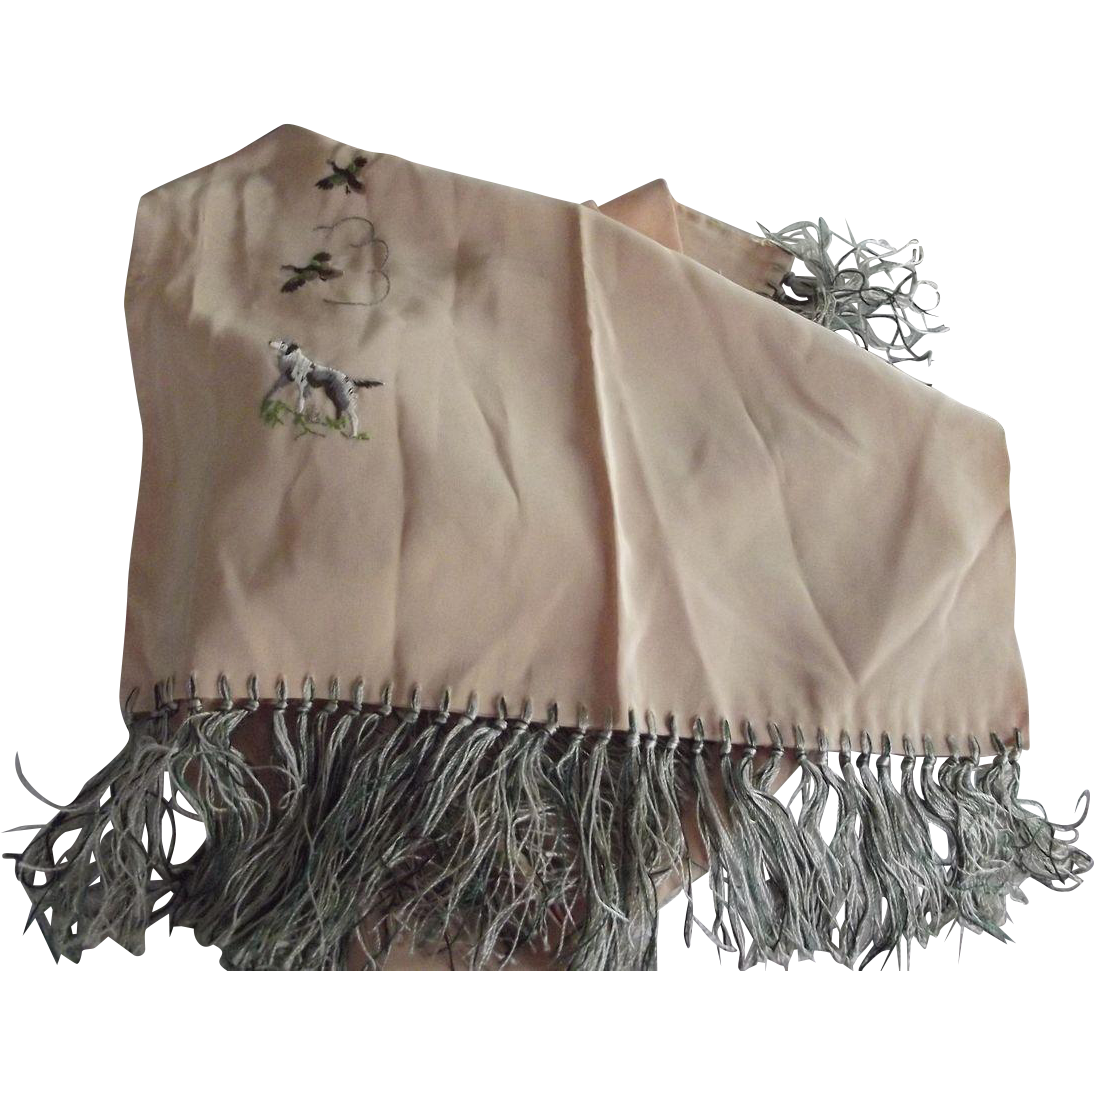 Peach Rayon Scarf Fringed Hunting Motif, Pheasant, Pointer Hunting Dog, Birds